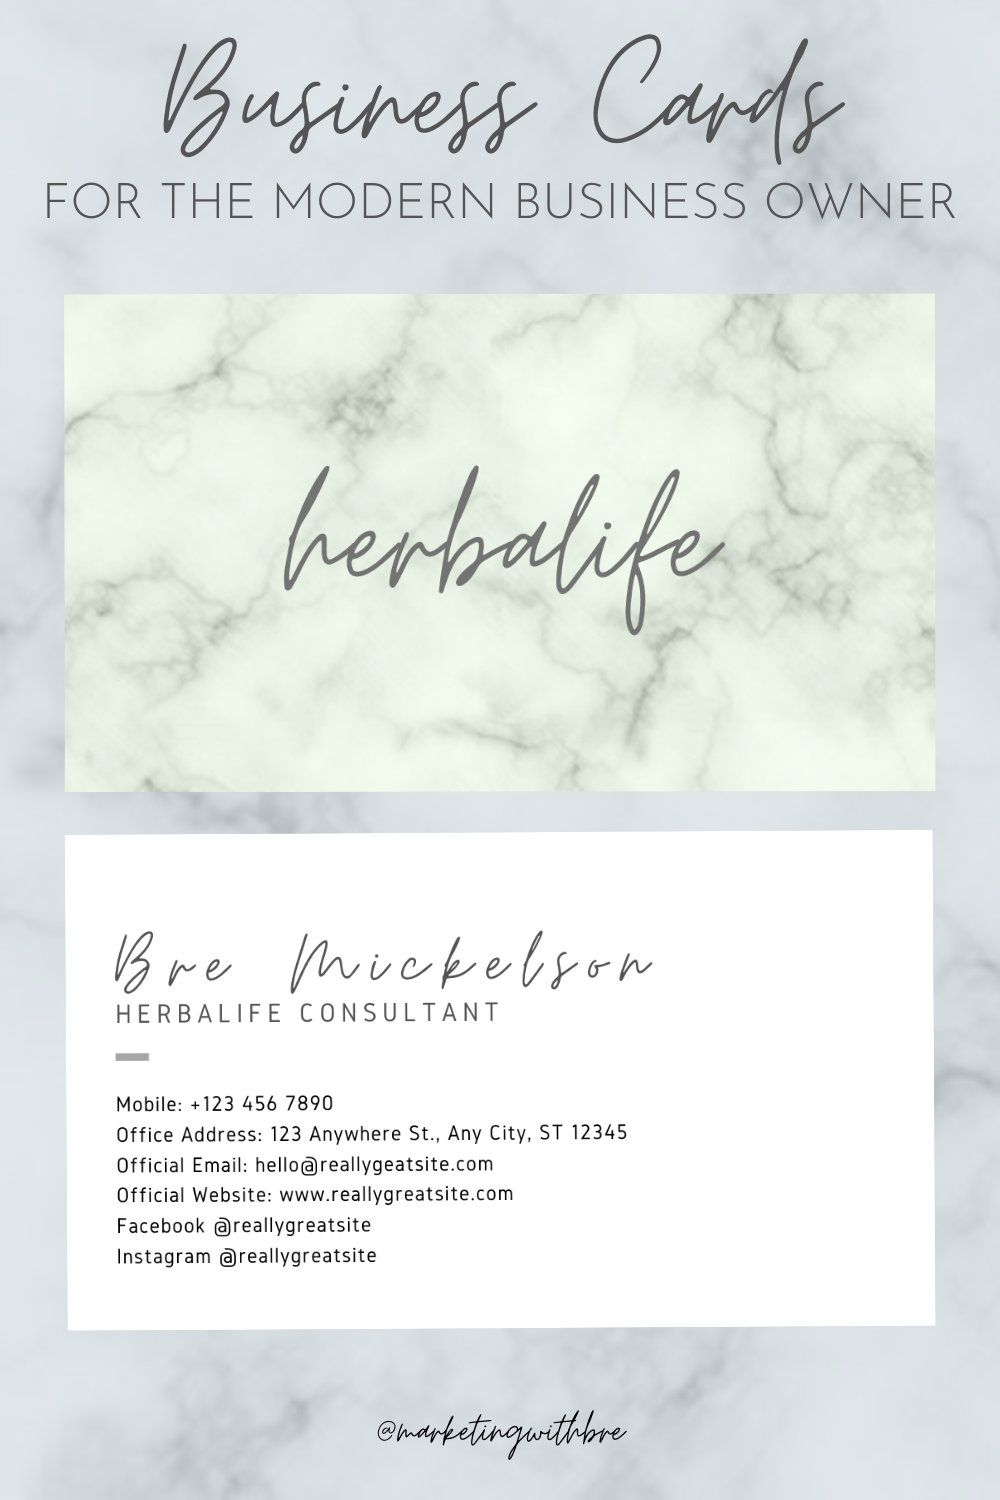 Herbalife Business Cards PDF Only Etsy in 2020